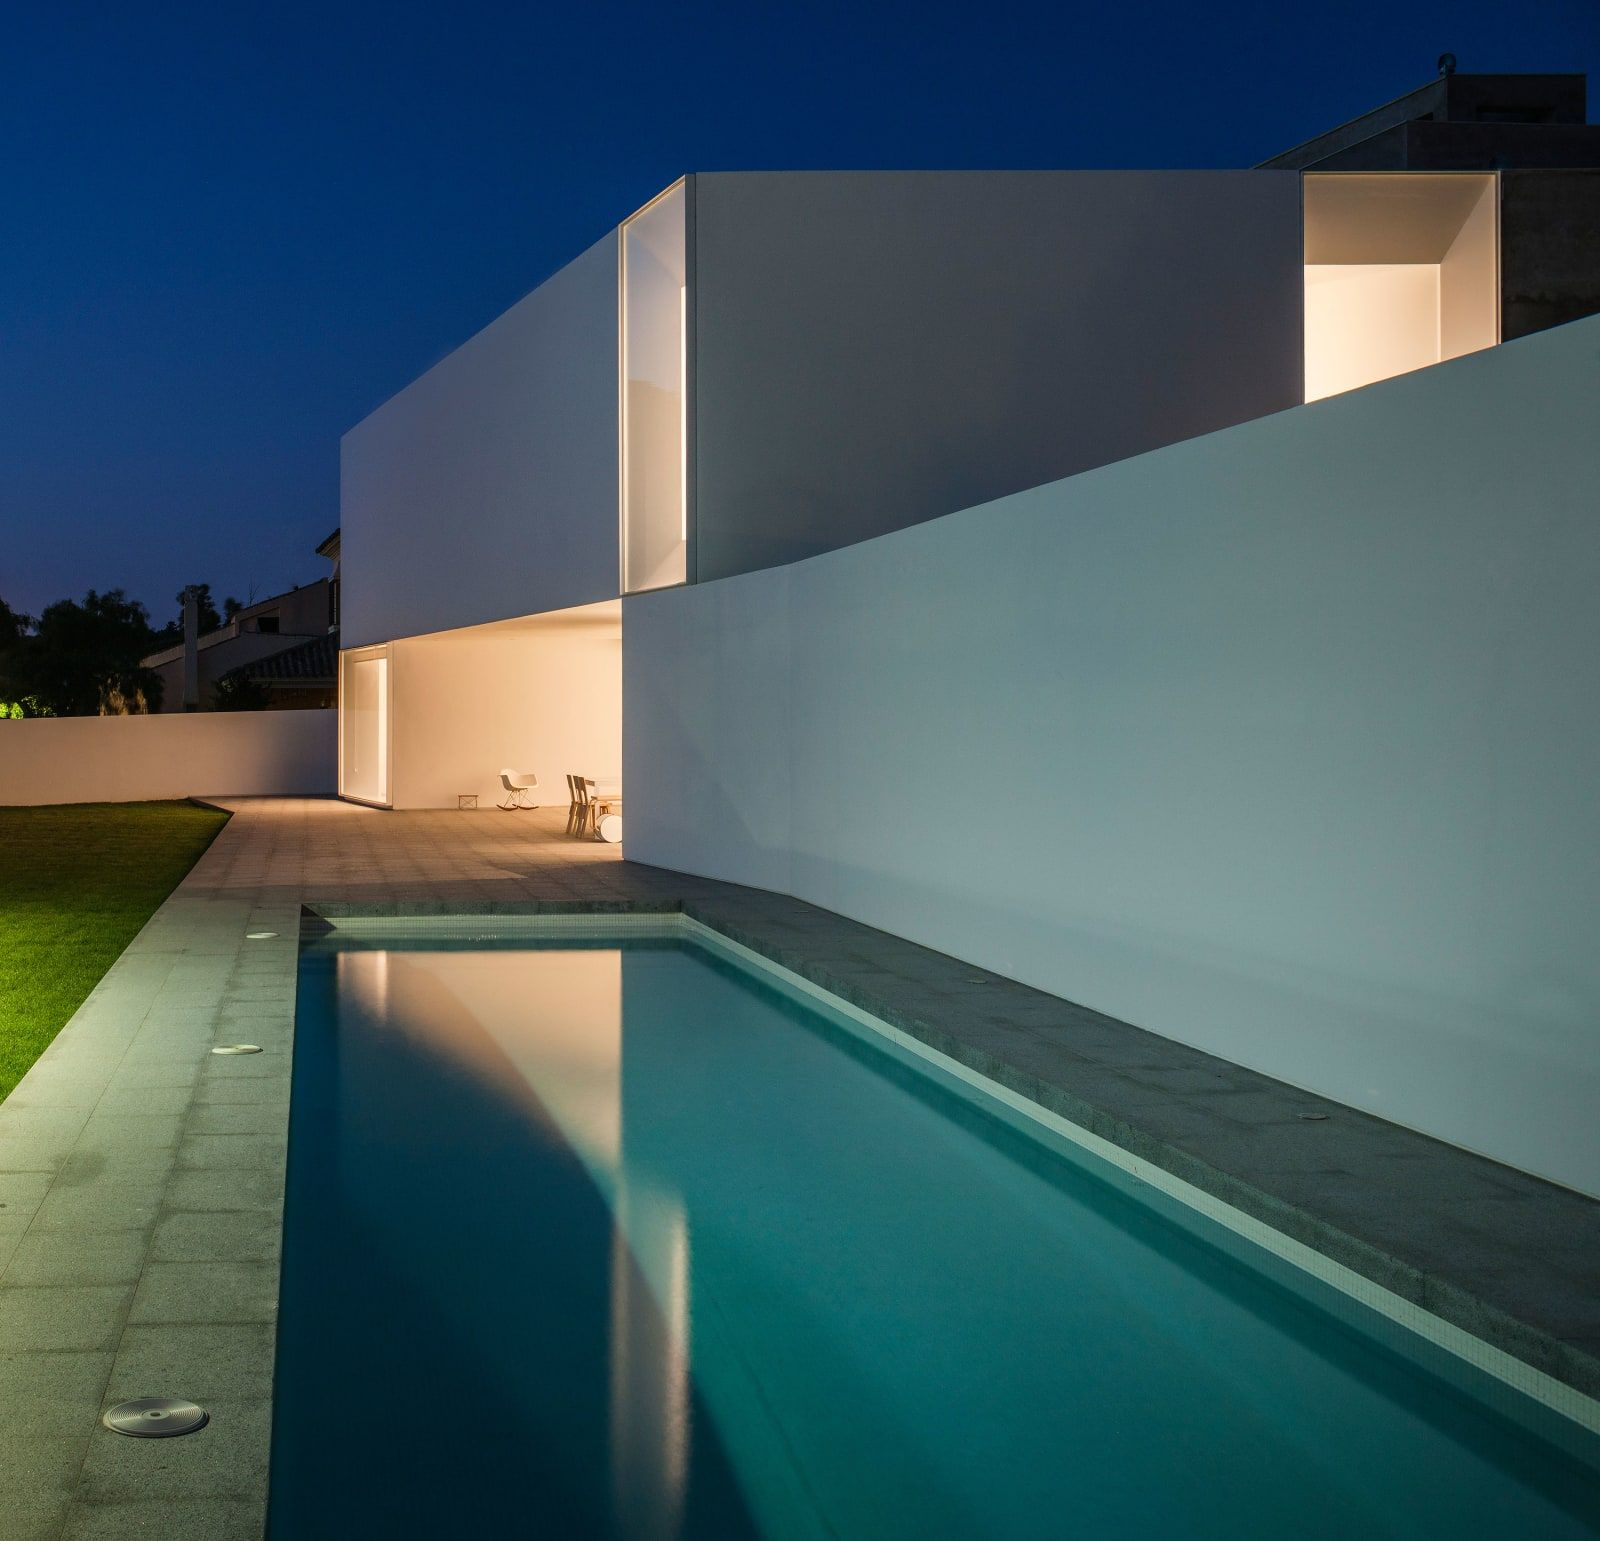 Adolfo prez fernando alda star 18 be arquitectura the house is located in a plot which has been divided in two parts to built two semi detached houses in the vistahermosa residential area in el puerto de sciox Choice Image